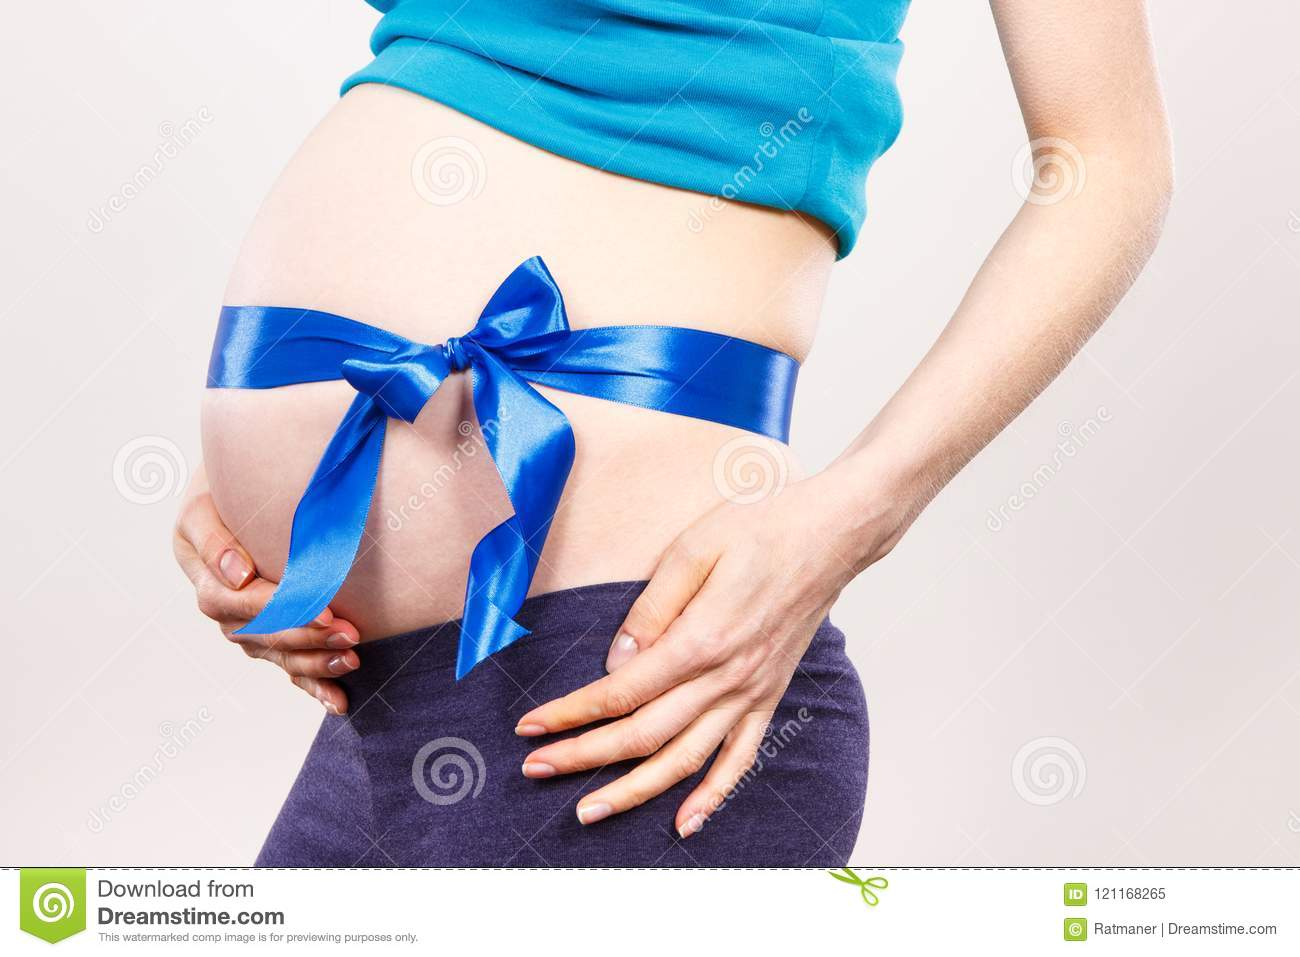 Pregnant woman with blue ribbon, concept of expecting for newborn